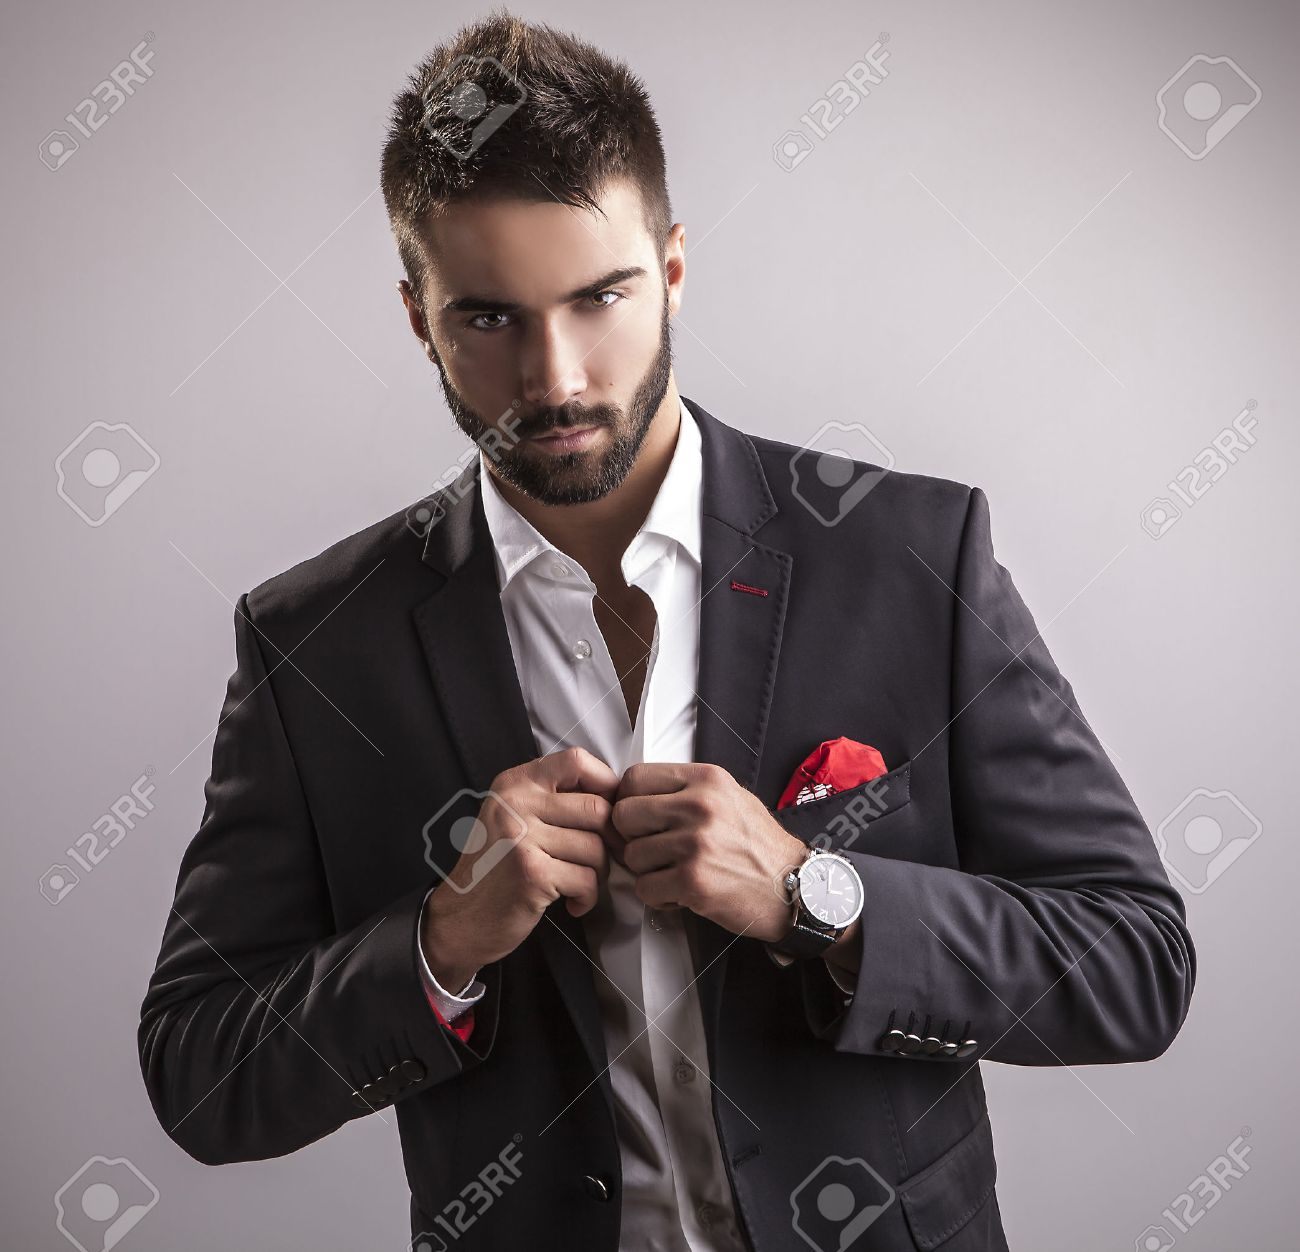 Elegant young handsome man  Studio fashion portrait Banque d'images - 22572302